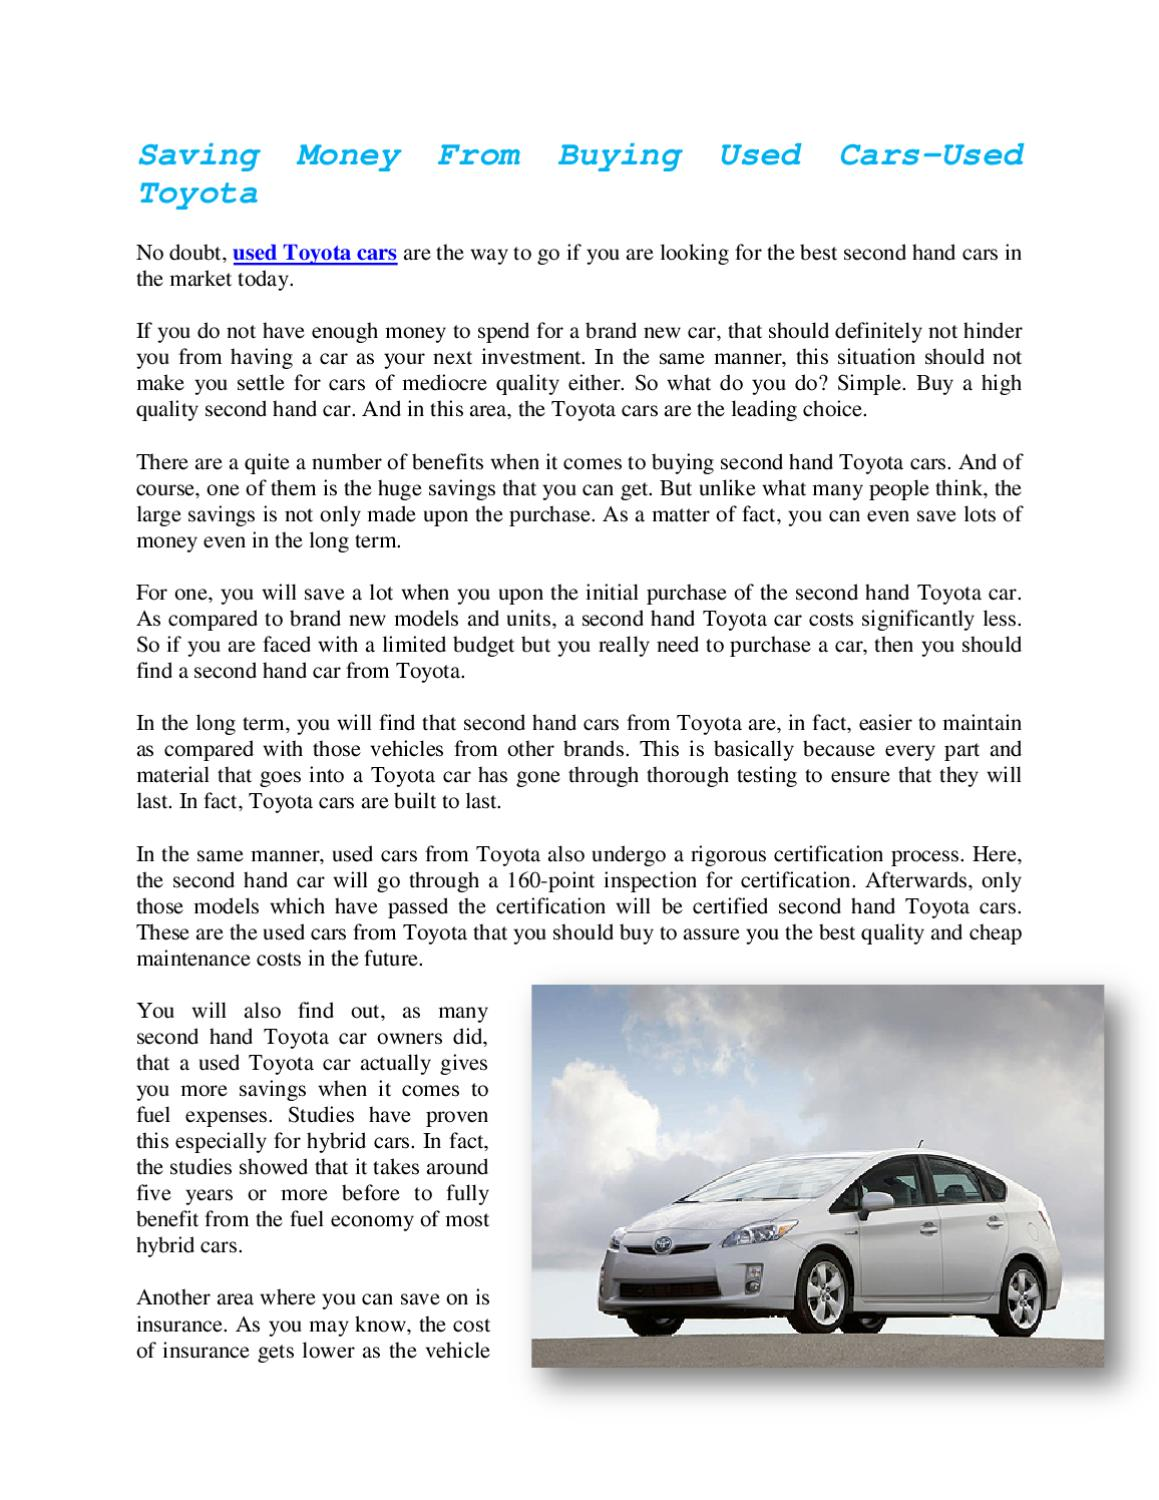 Used toyota 2 by thao trinh issuu xflitez Images